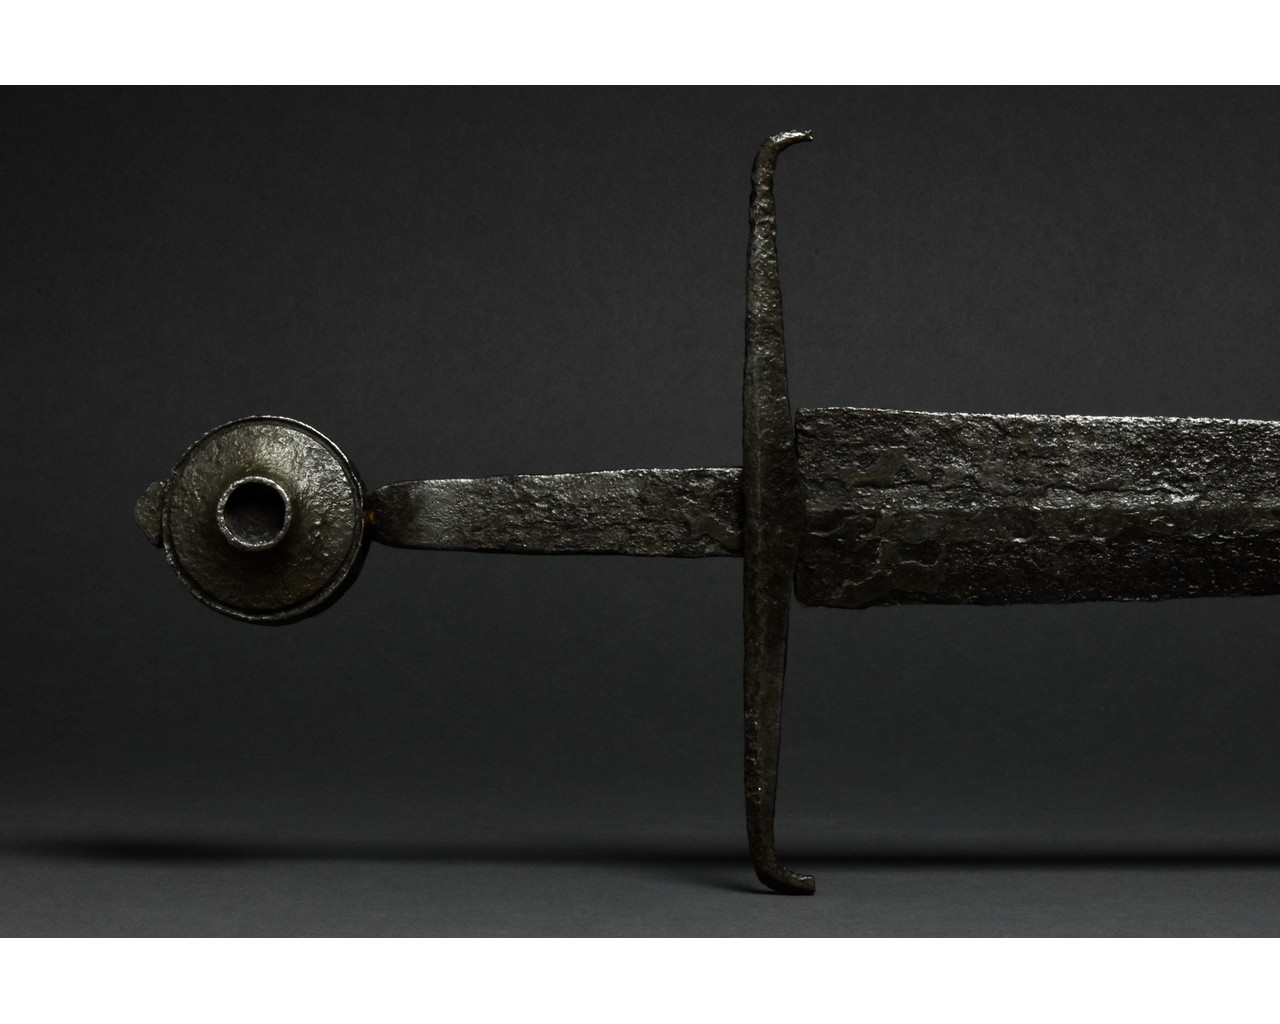 MEDIEVAL IRON SWORD WITH HANDLE - Image 4 of 9